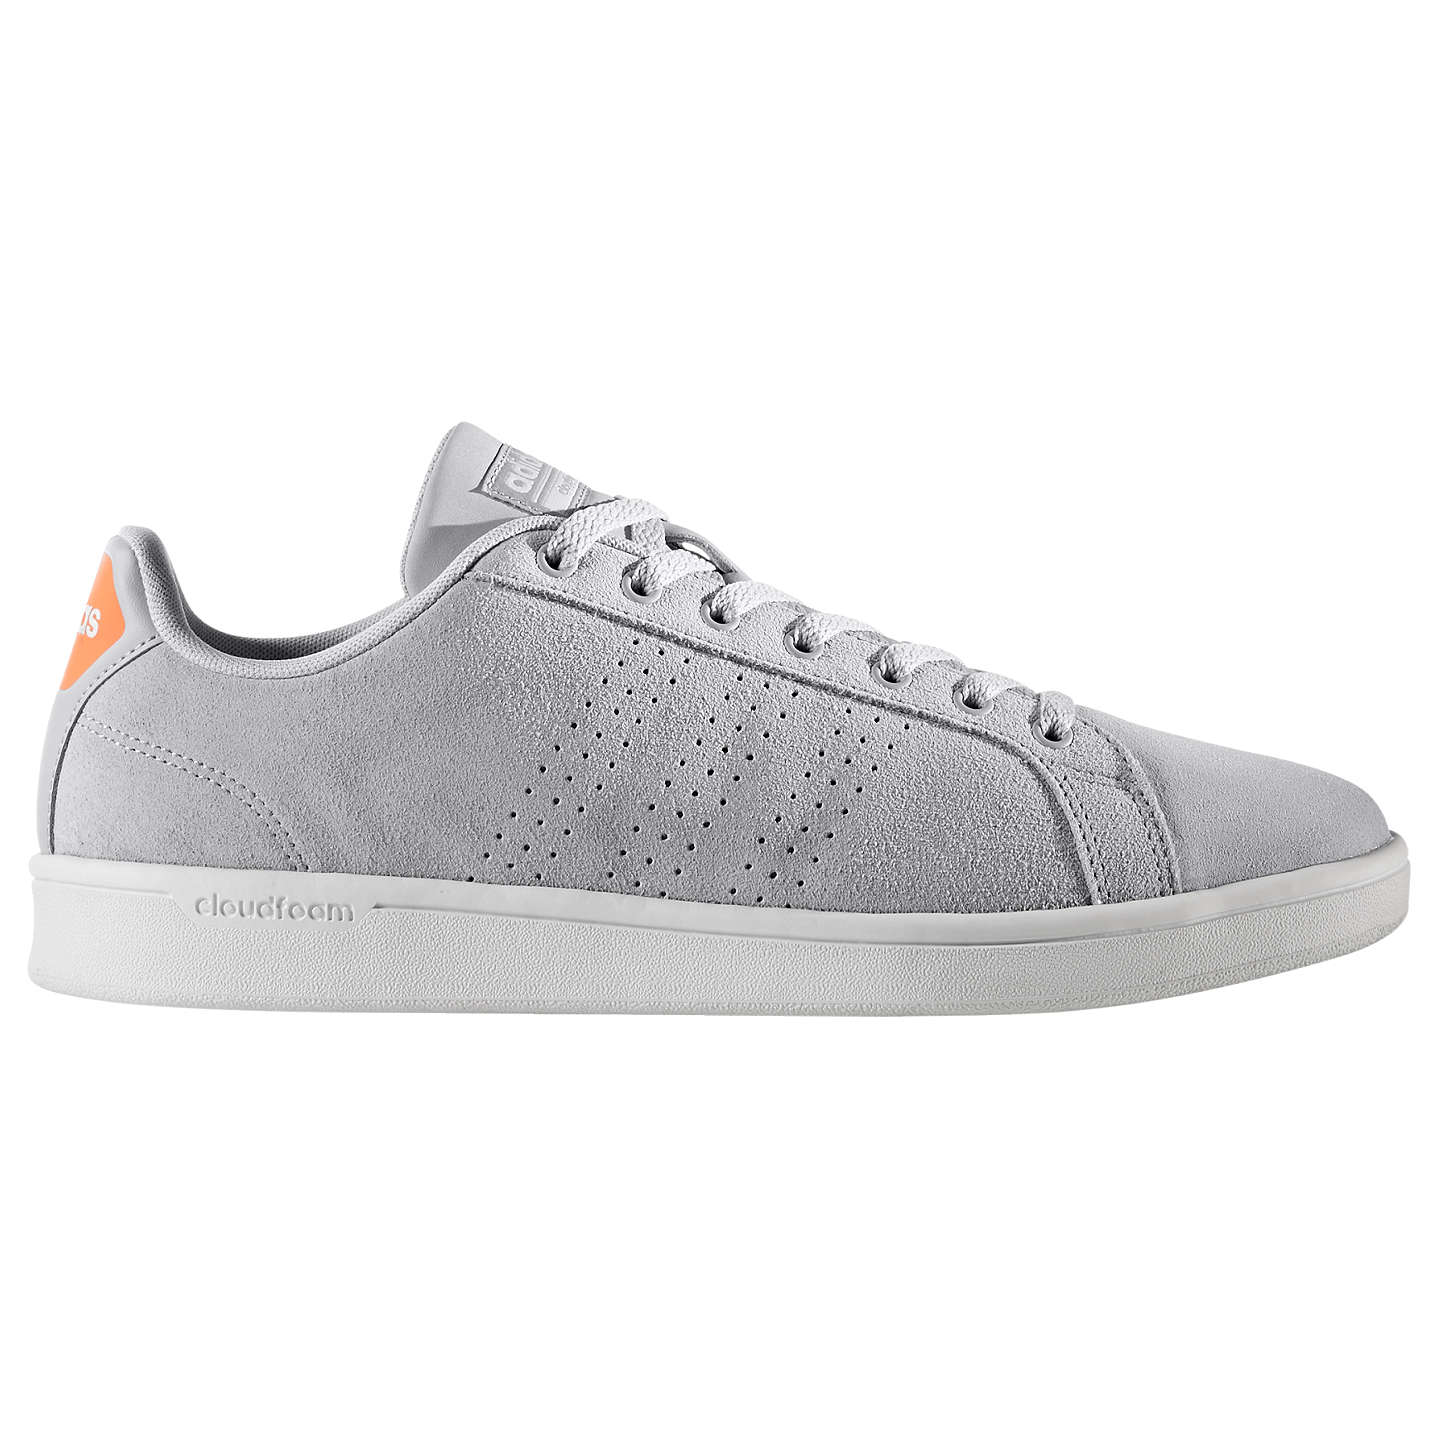 Buyadidas Cloudfoam Advantage Clean Men's Trainers, Grey, 7 Online at  johnlewis. ...